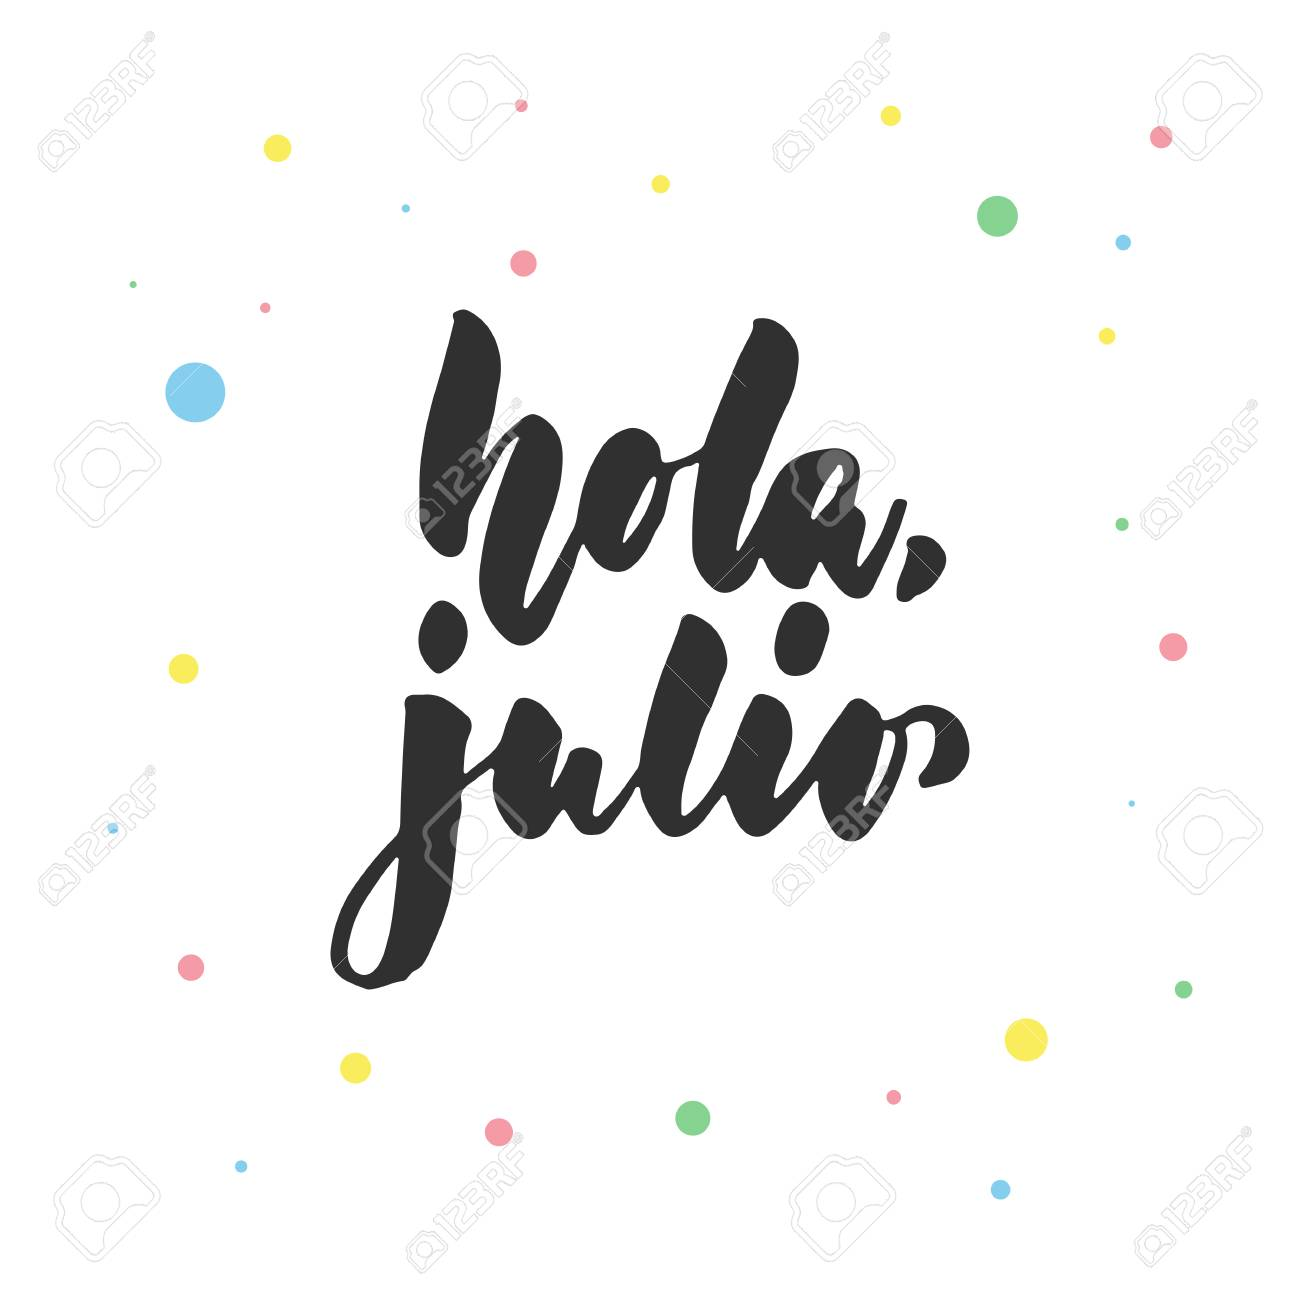 Hola, Julio   Hello, July In Spanish, Latin Lettering Quote With Colorful  Circles